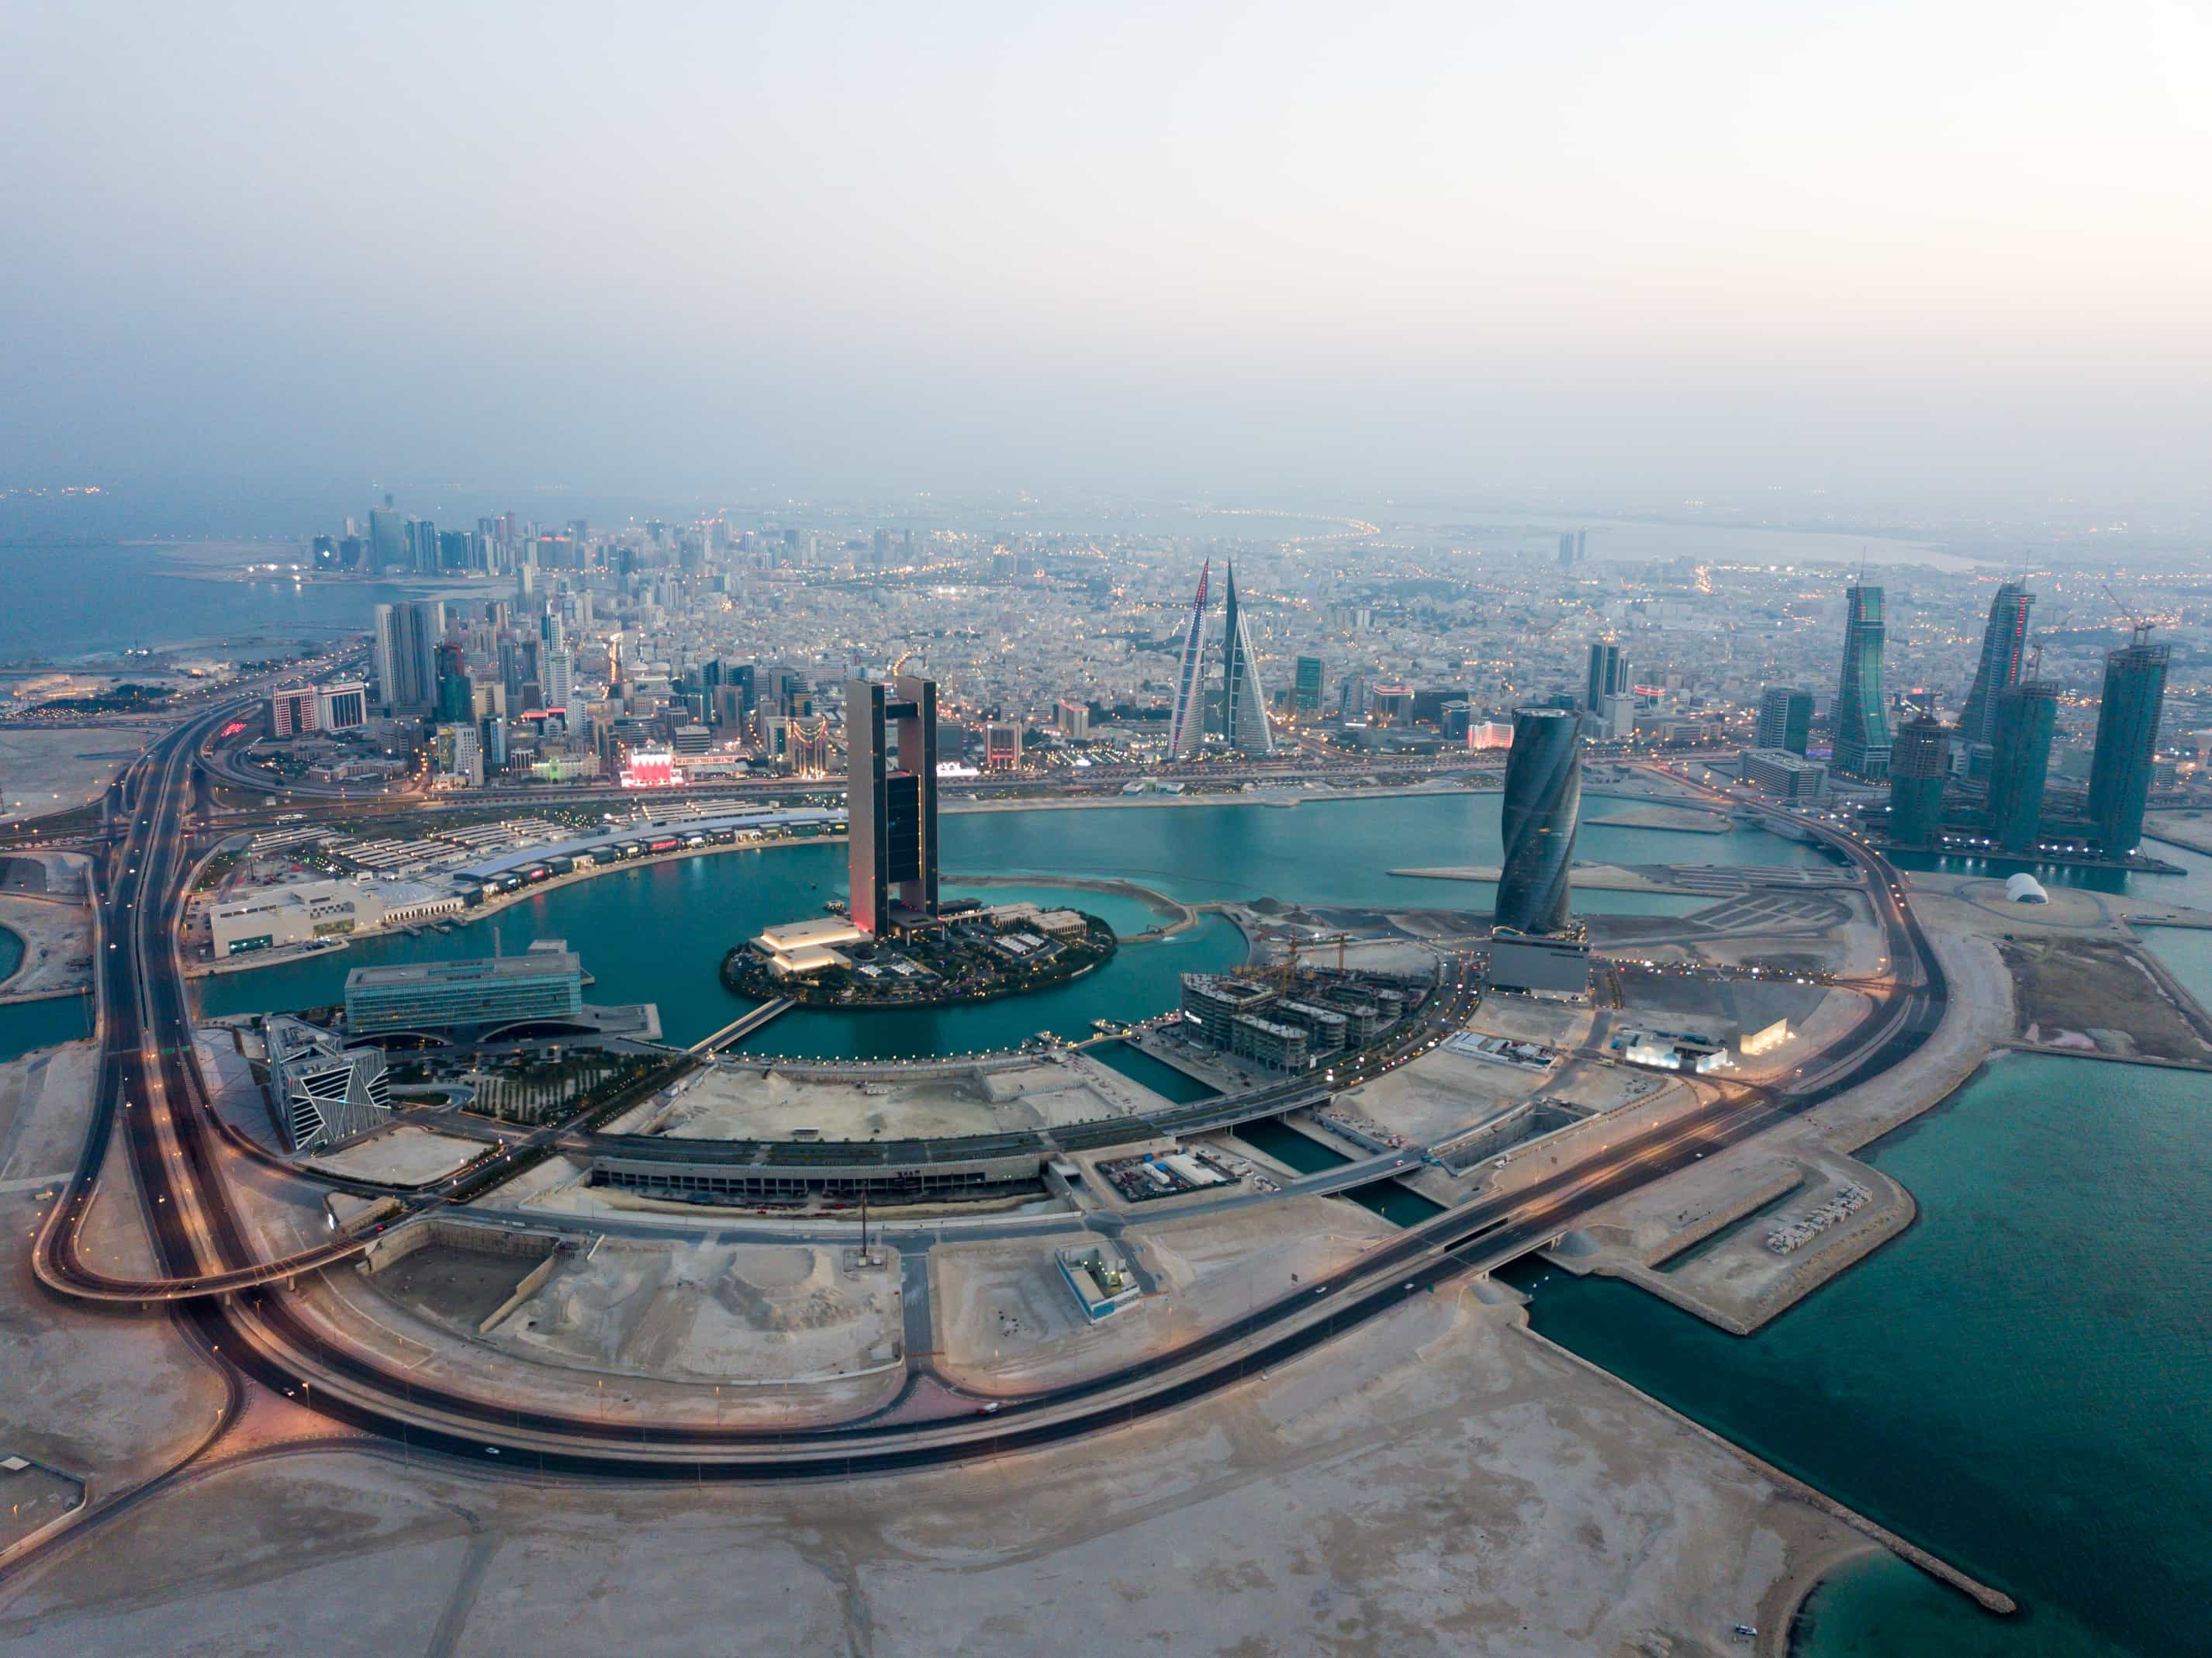 Despite the economic slowdown, Bahrain's non-oil sector to continues to grow in 2018